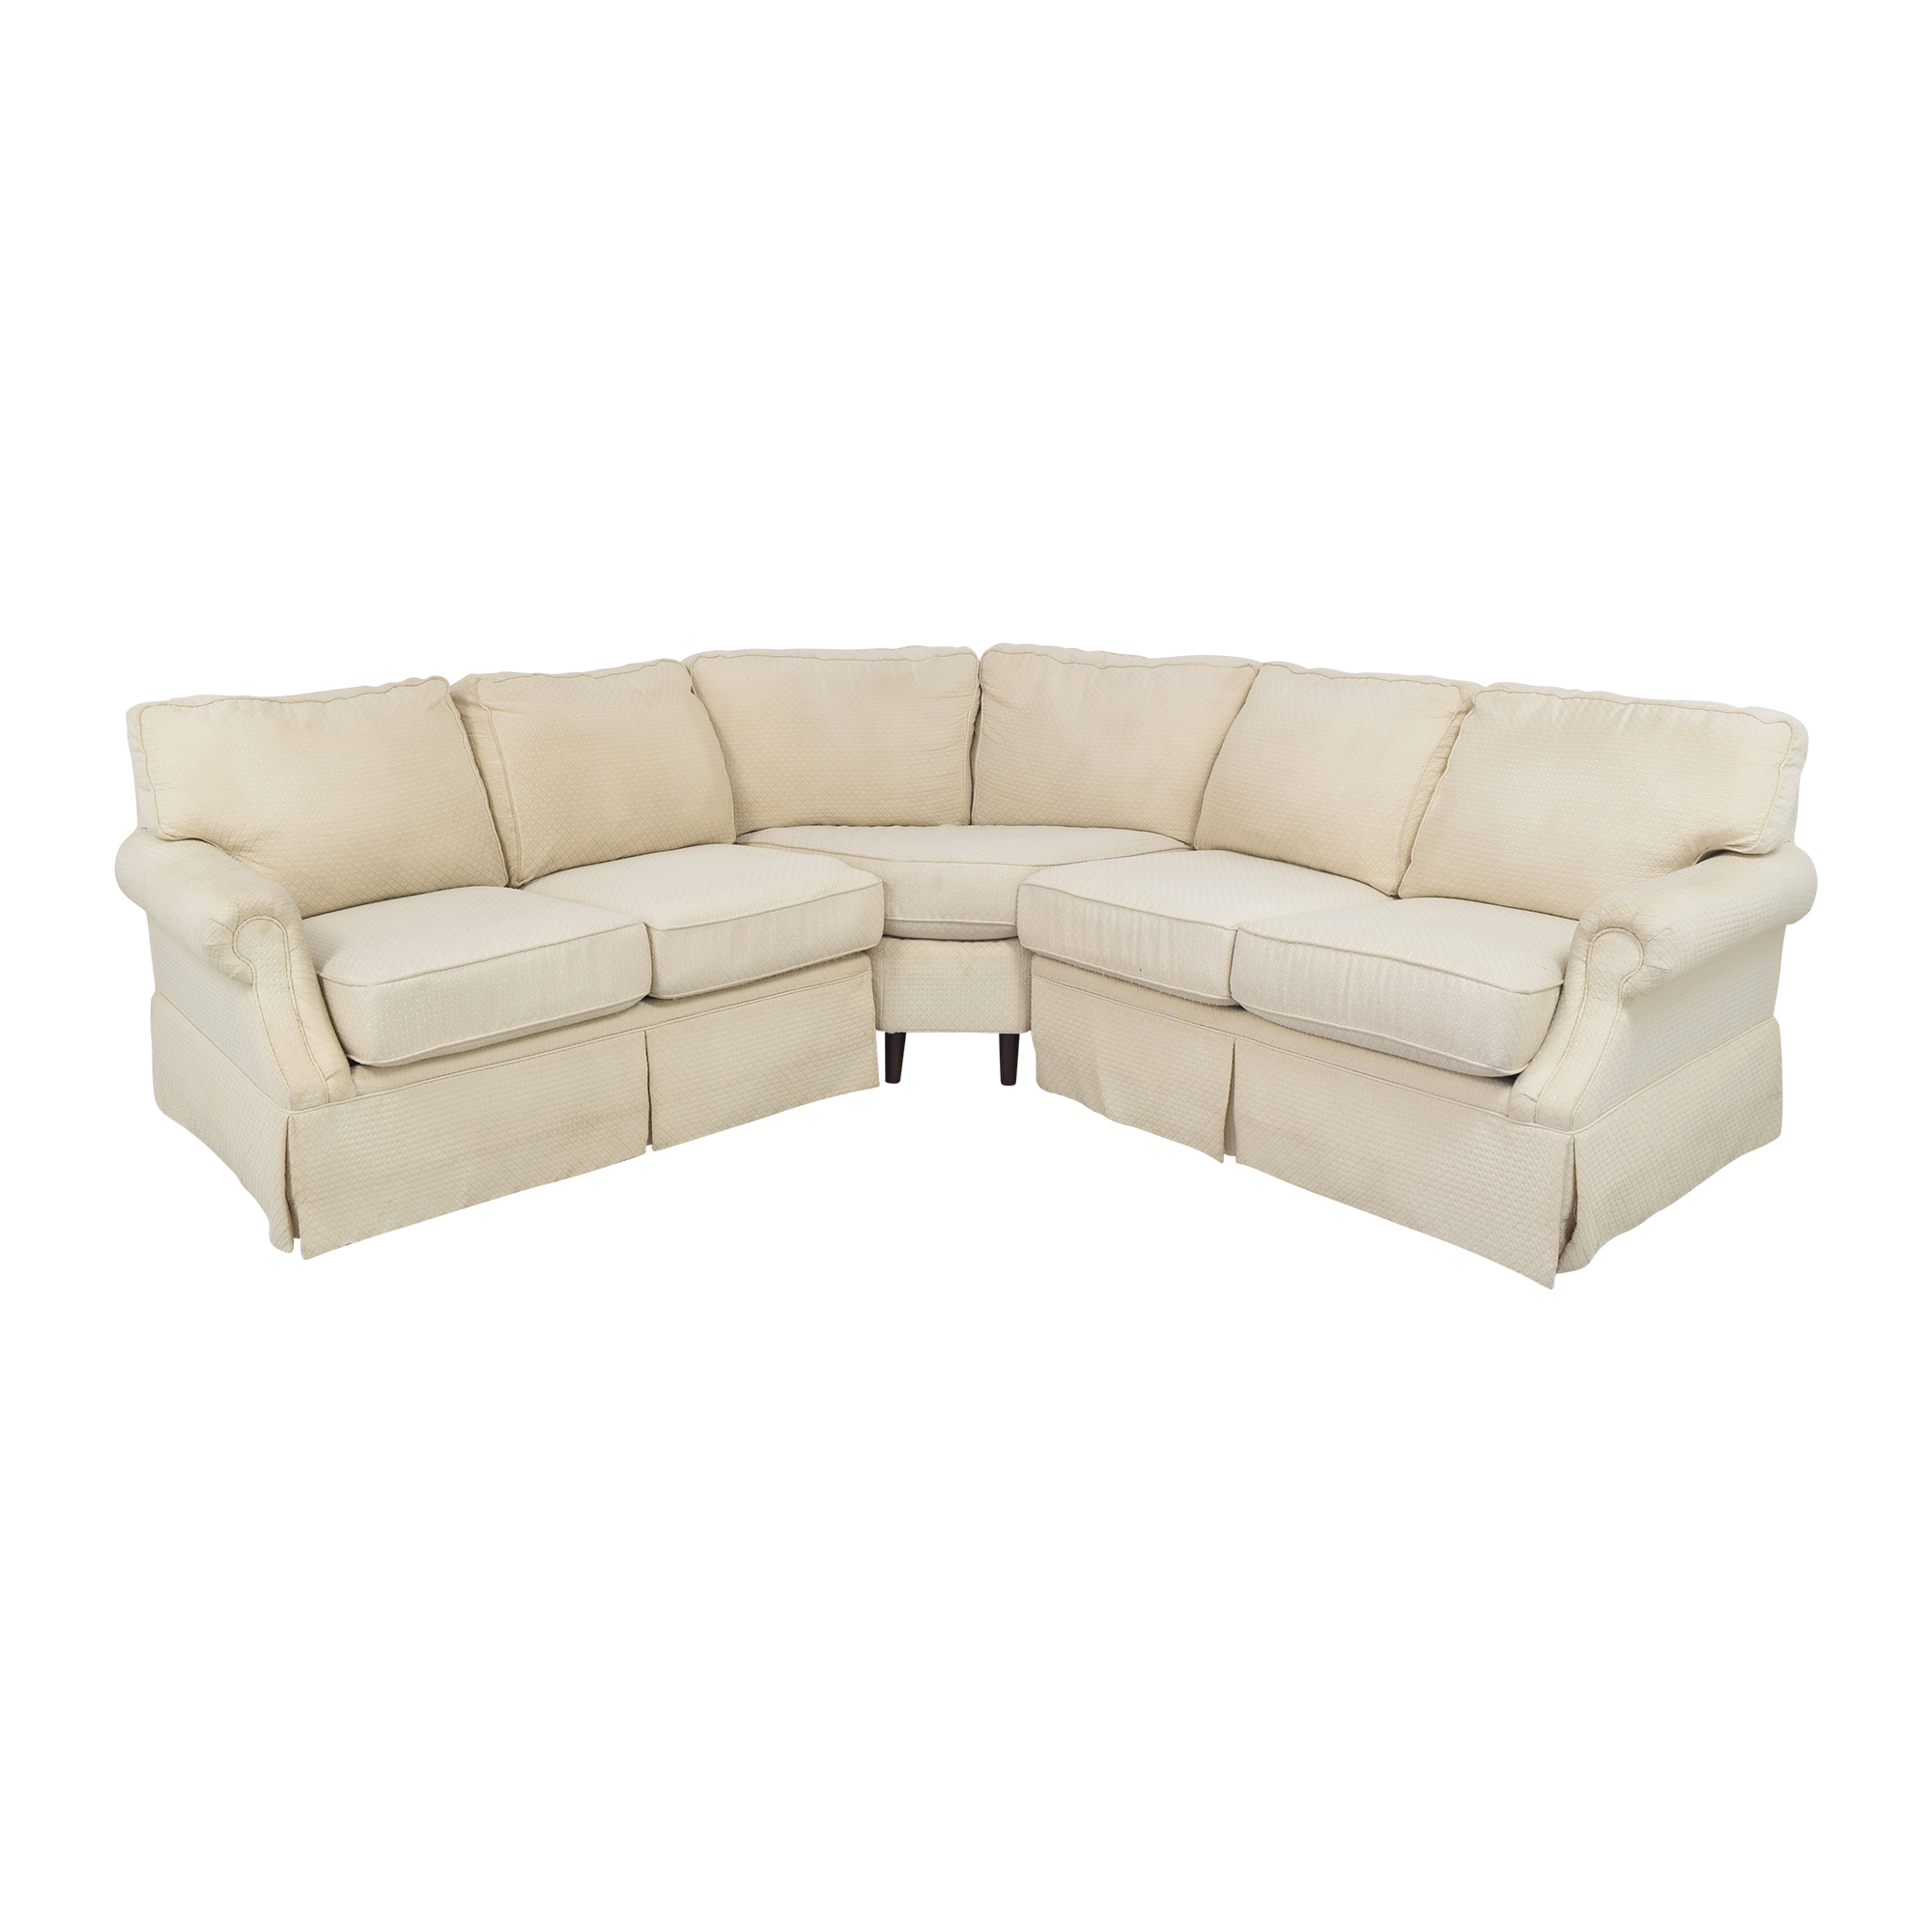 Flexsteel Flexsteel L Shaped Sectional Sofa Sofas